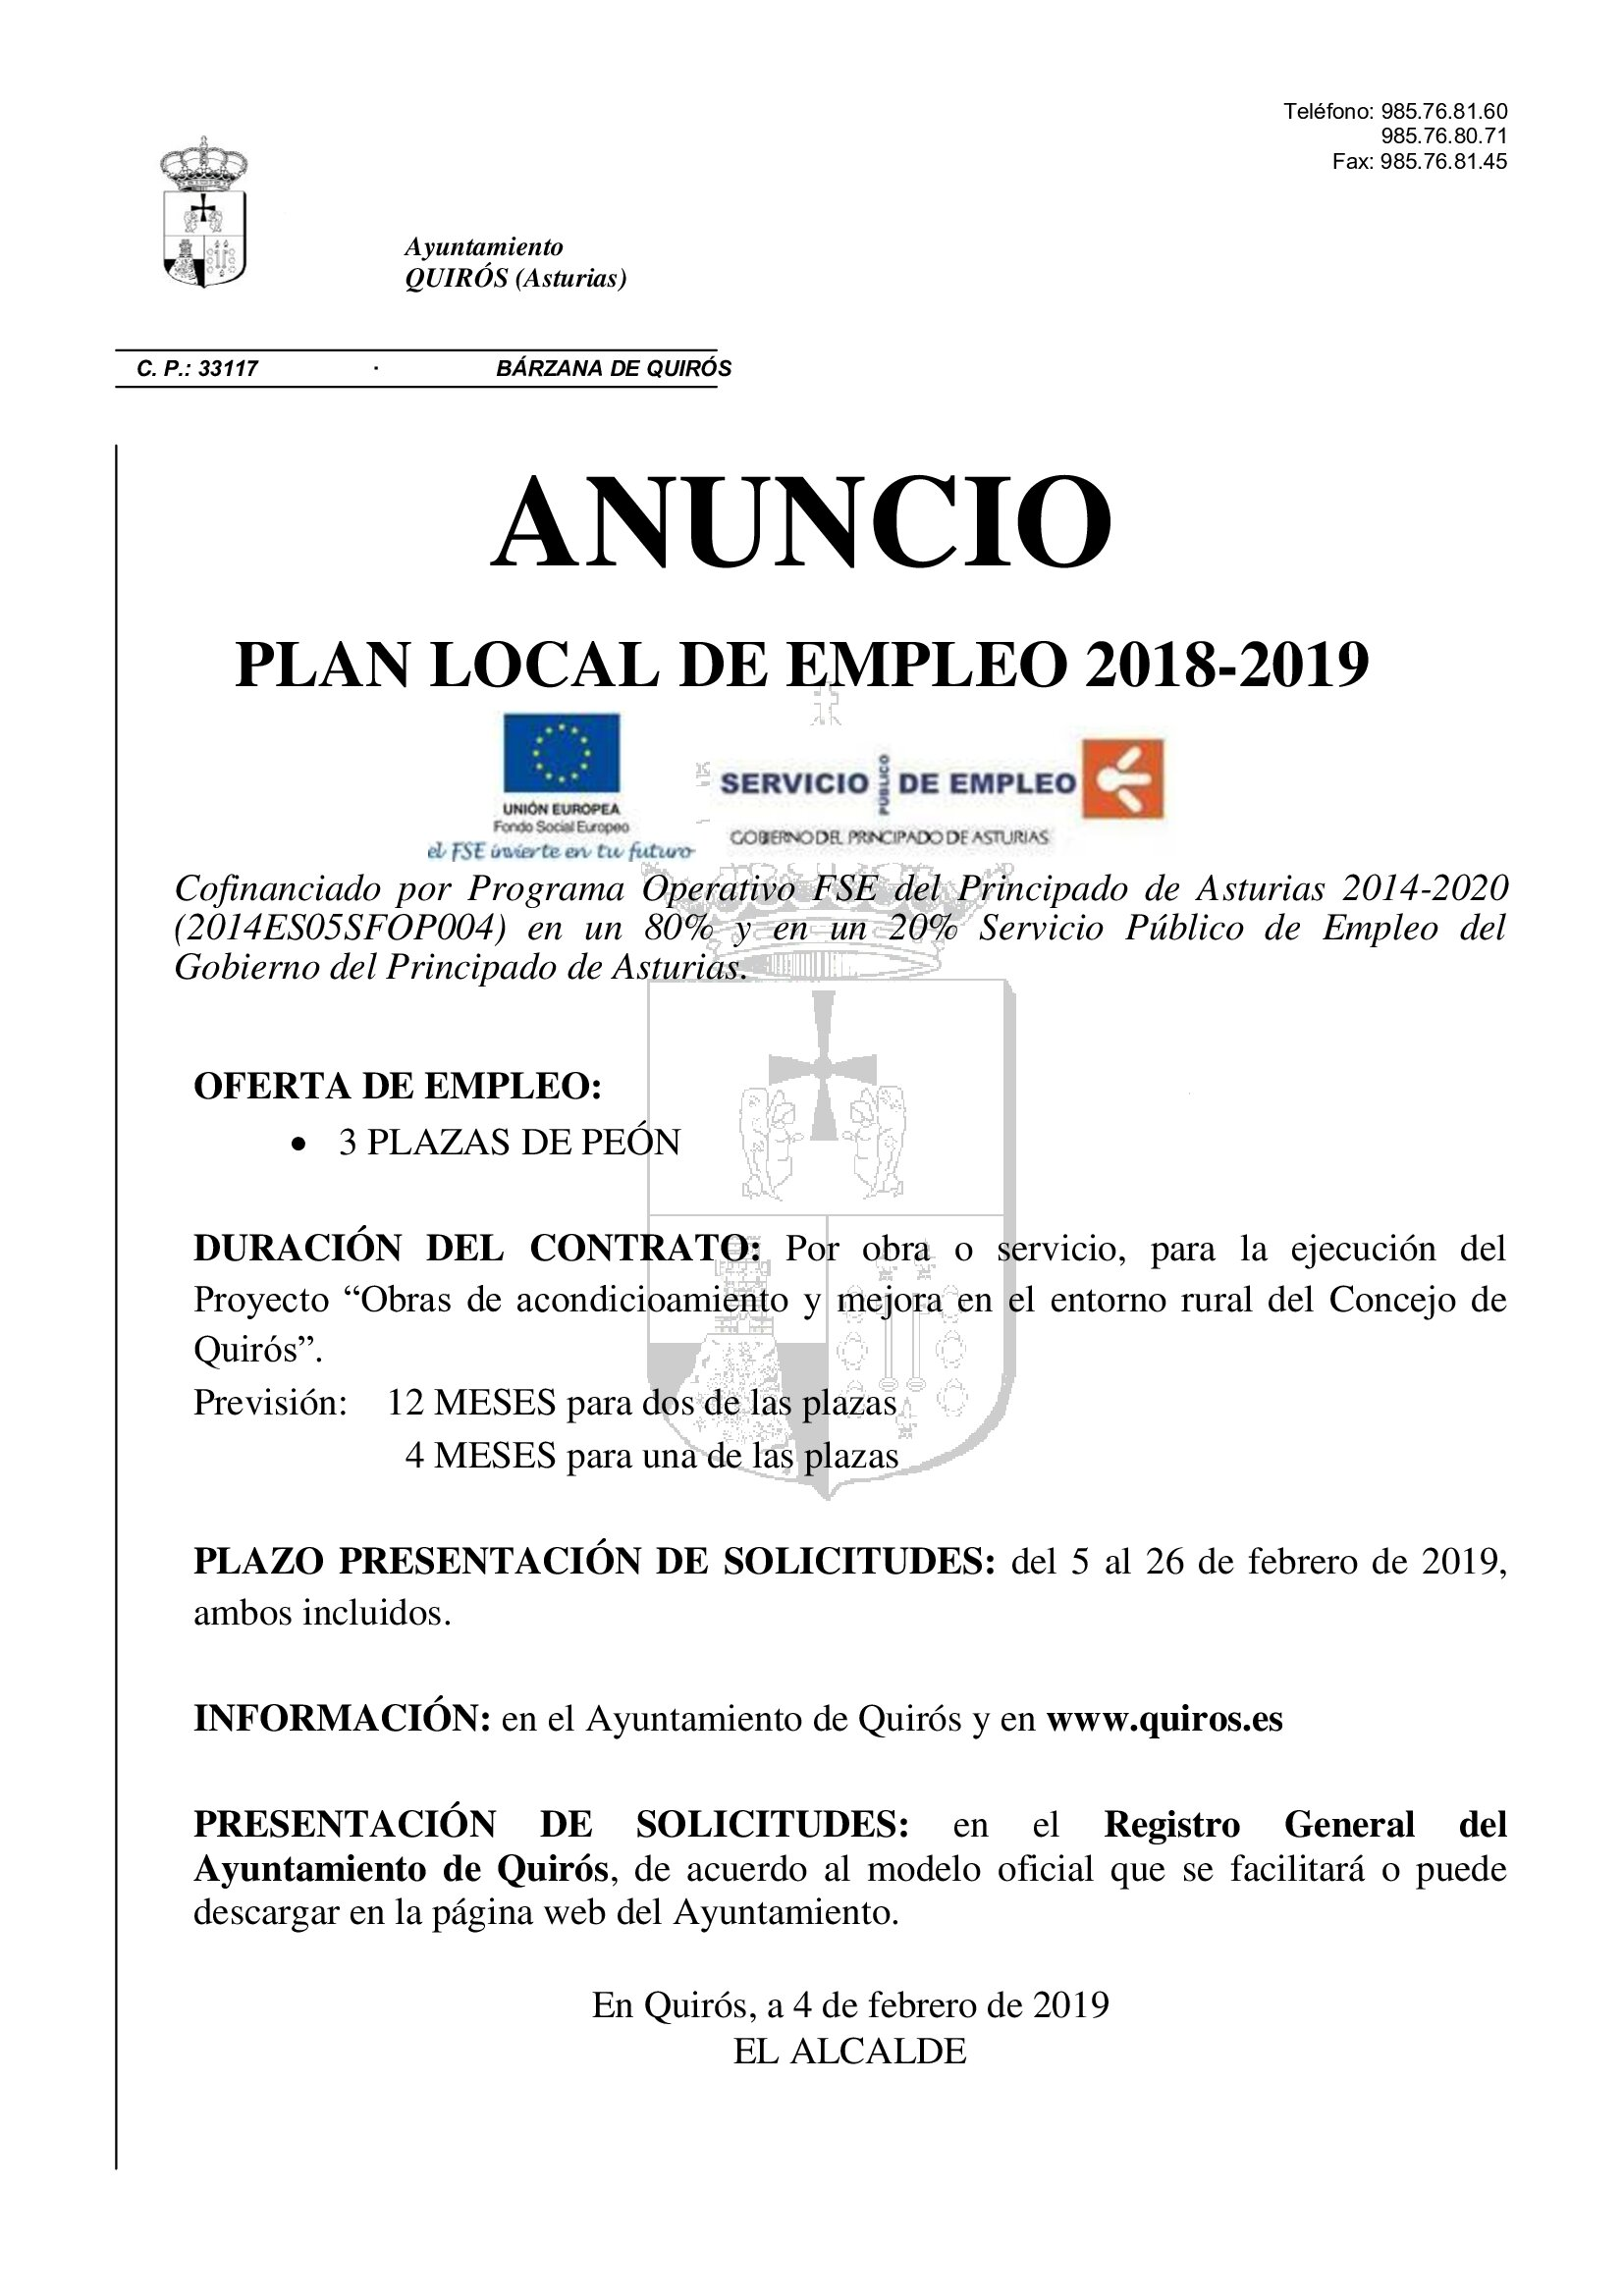 Anuncio Plan Local de Empleo 2018 2019 Quirós